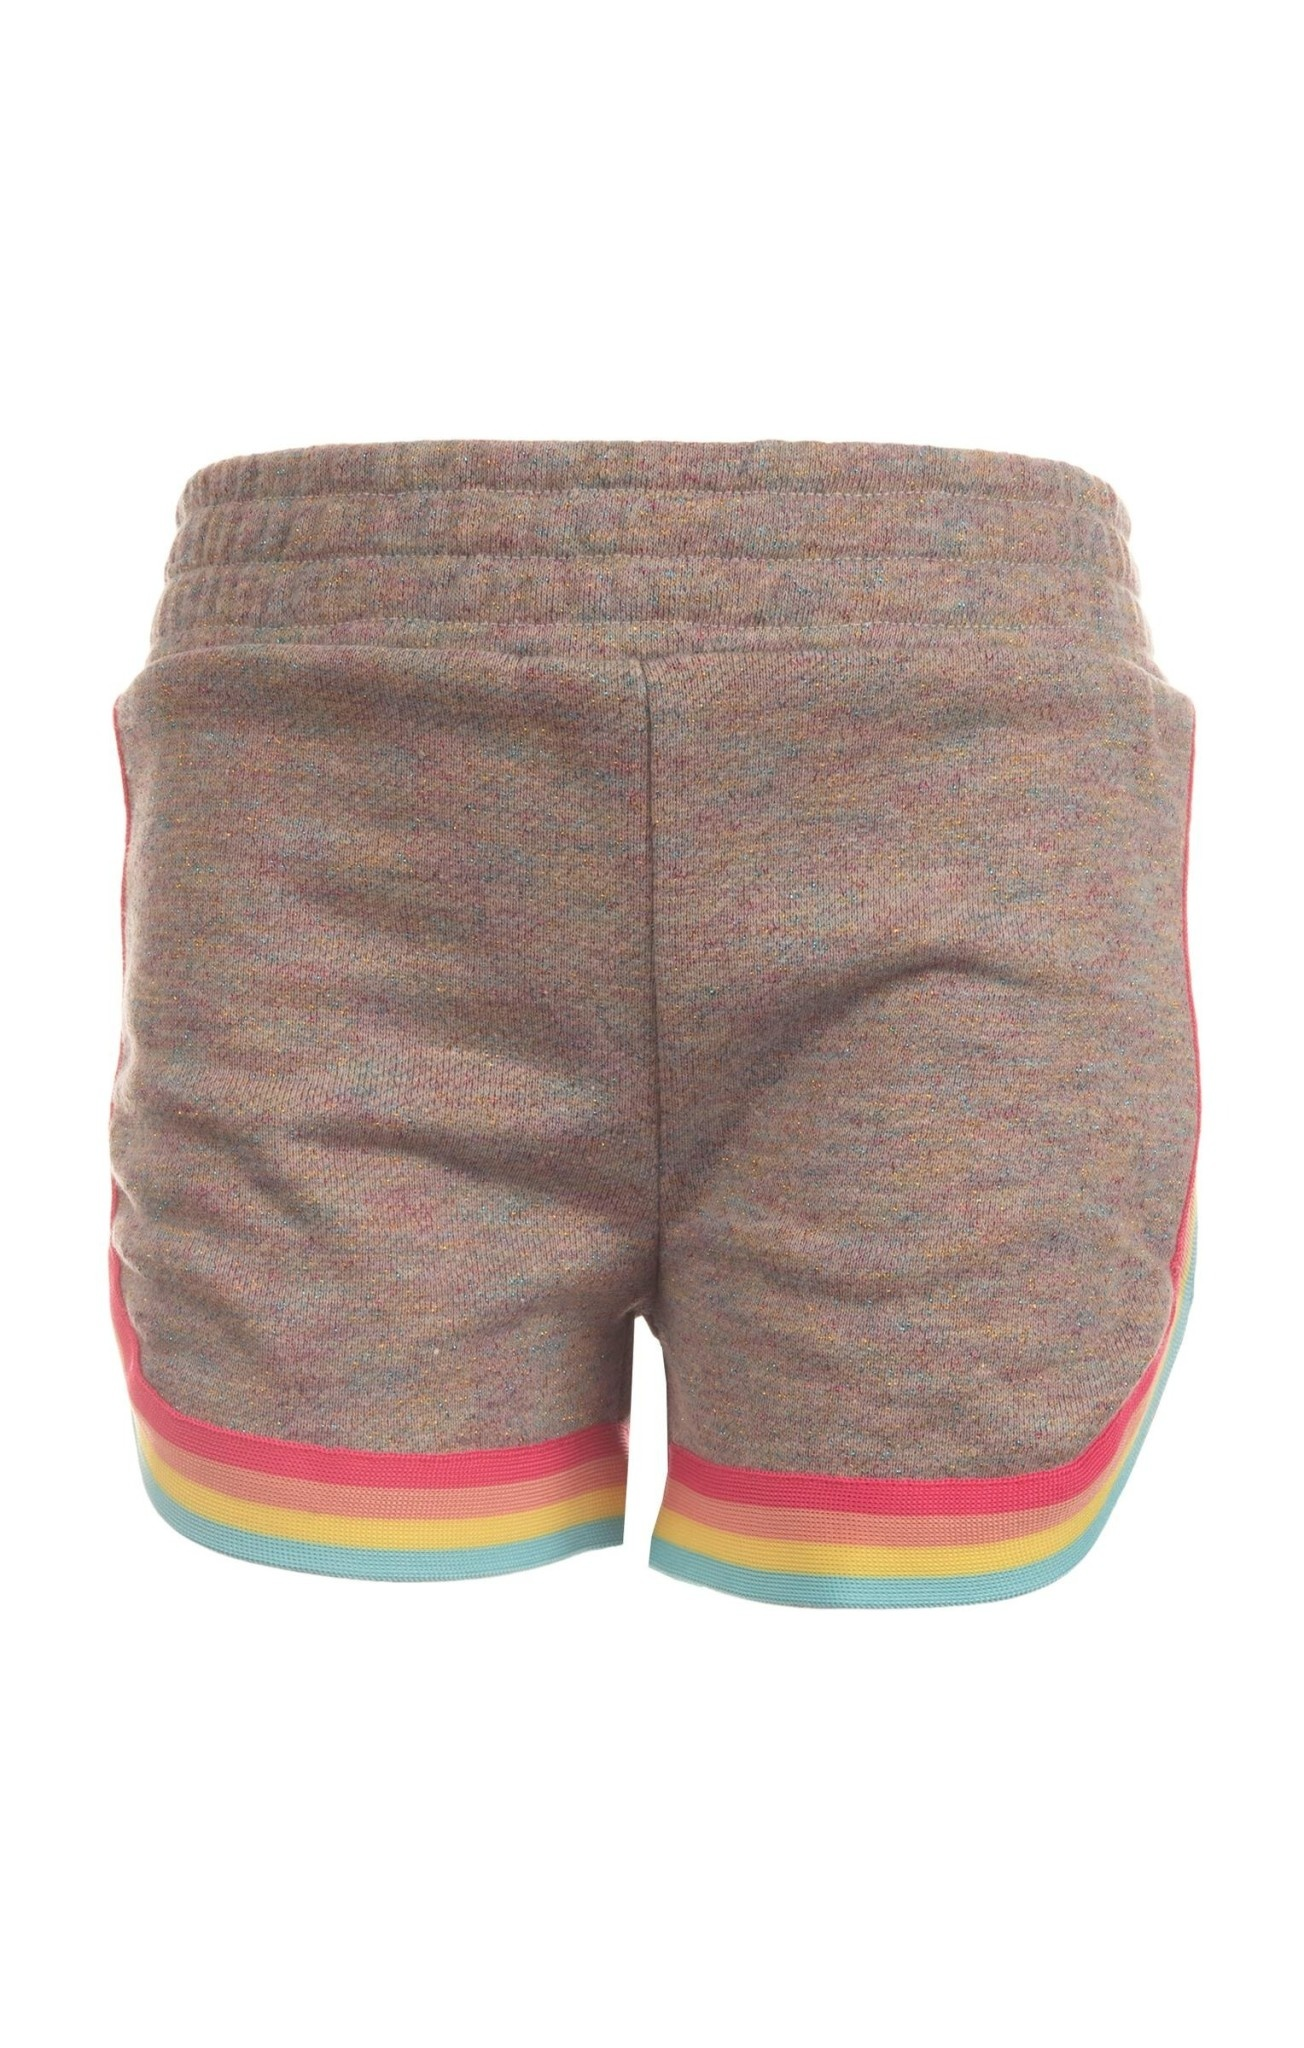 Appaman Lori Short - Heather Grey Sparkle